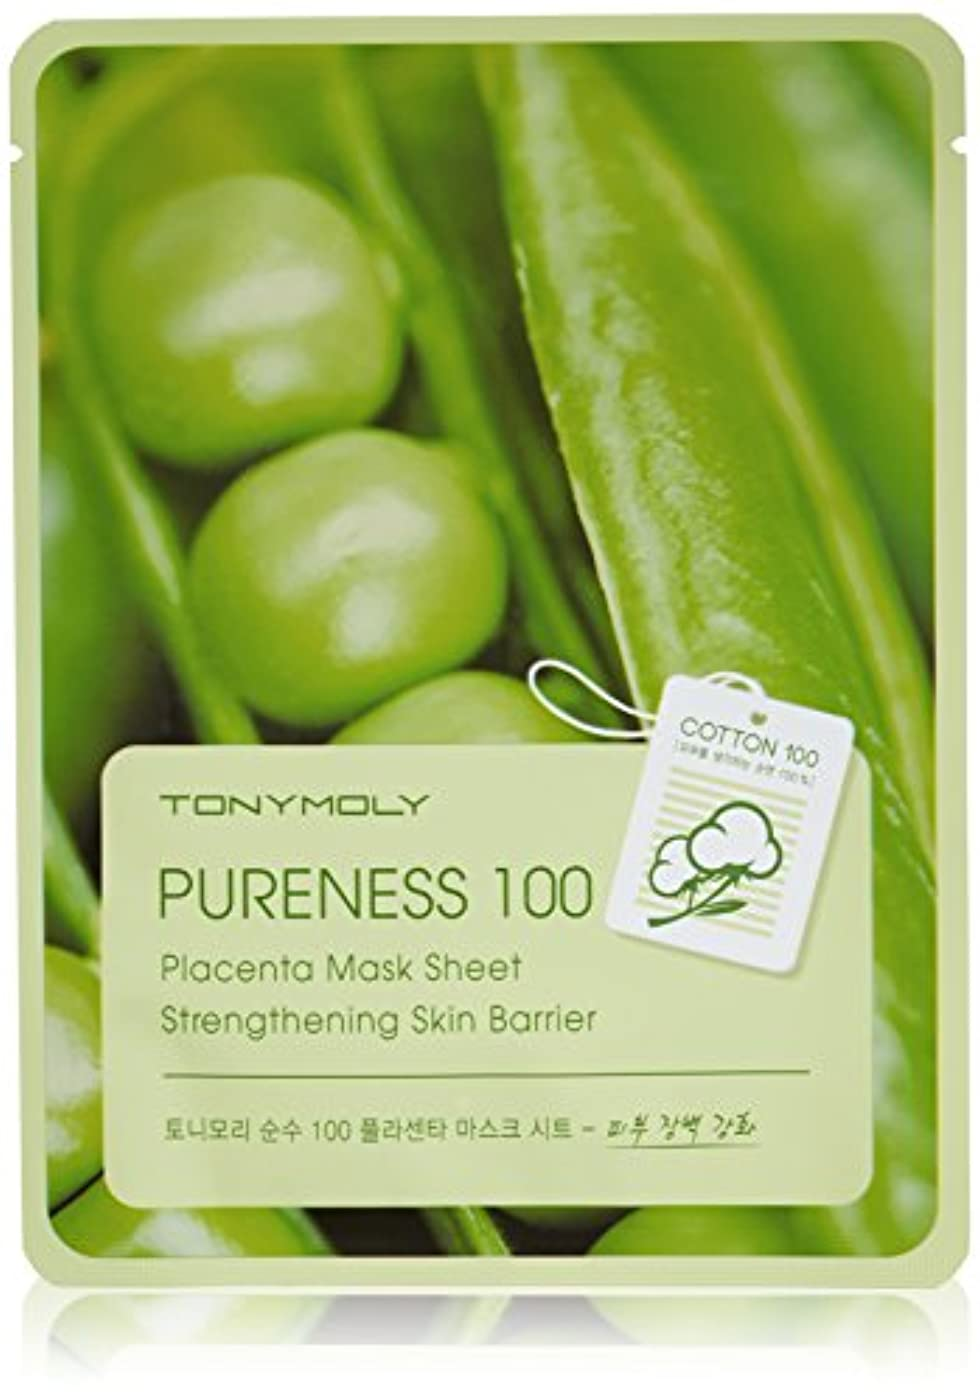 TONYMOLY Pureness 100 Placenta Mask Sheet Strengthening Skin Barrier (並行輸入品)